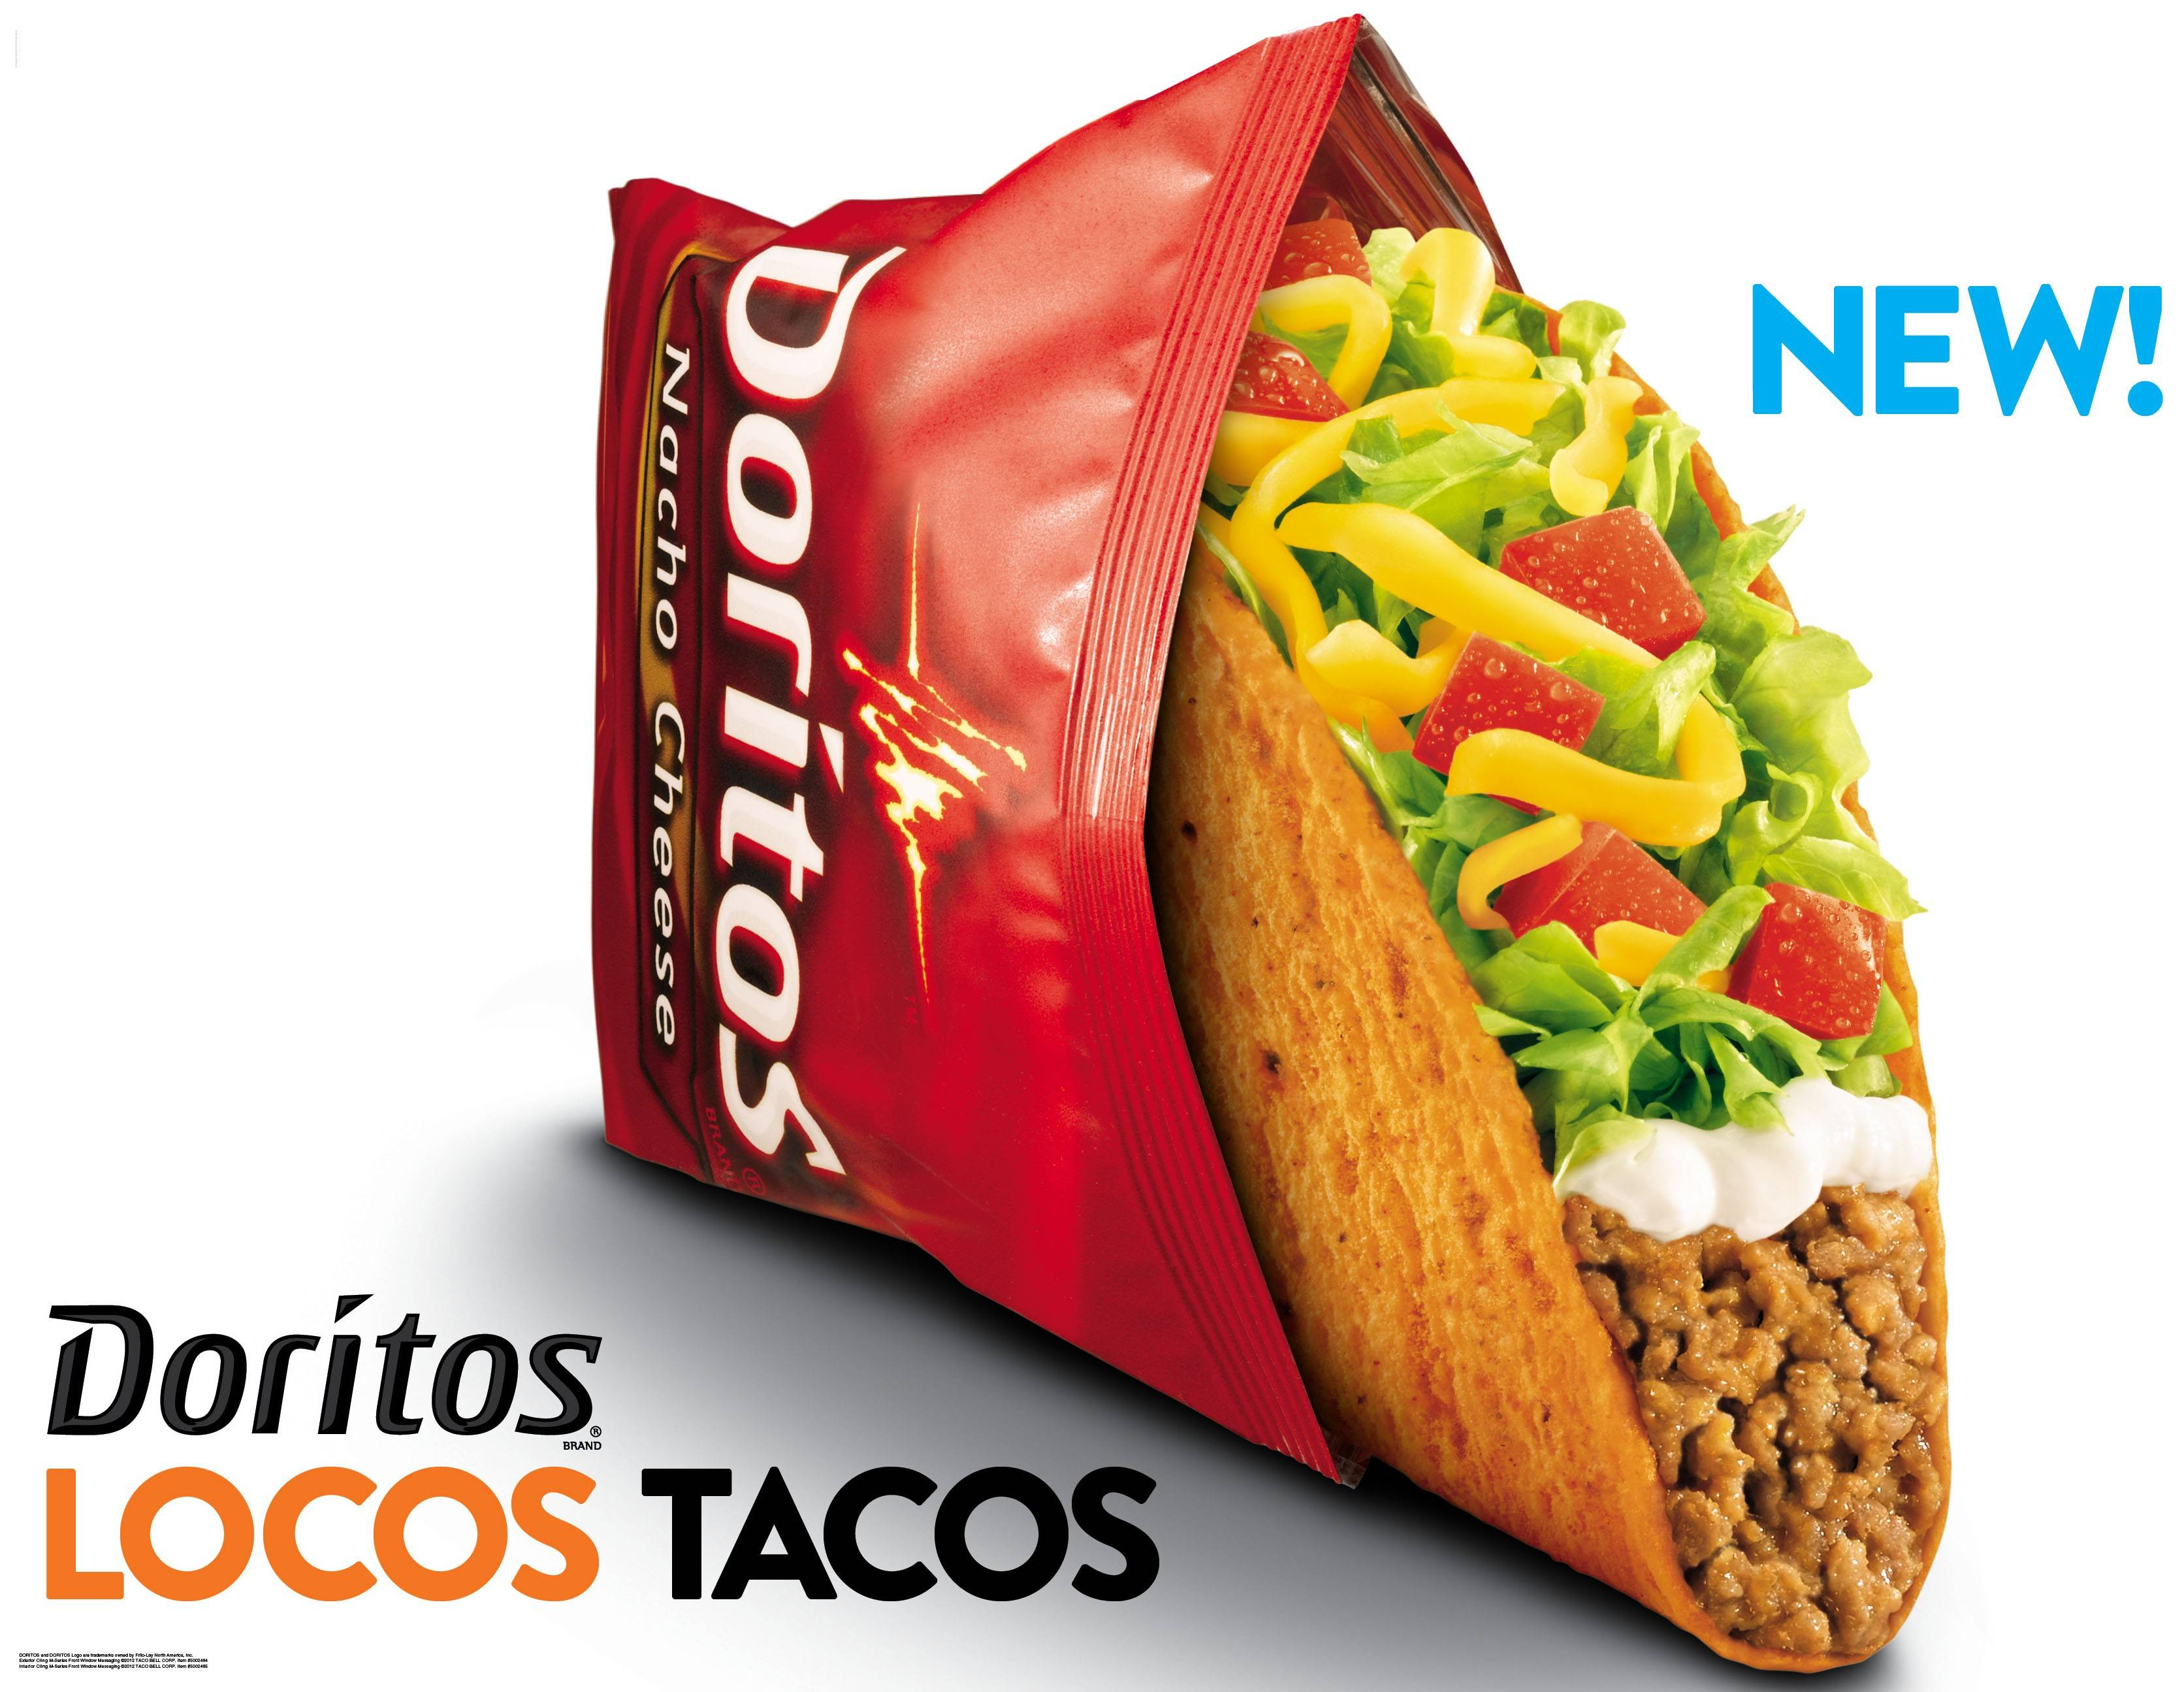 Taco Bell is giving away free tacos today, thanks to the Golden State Warriors.